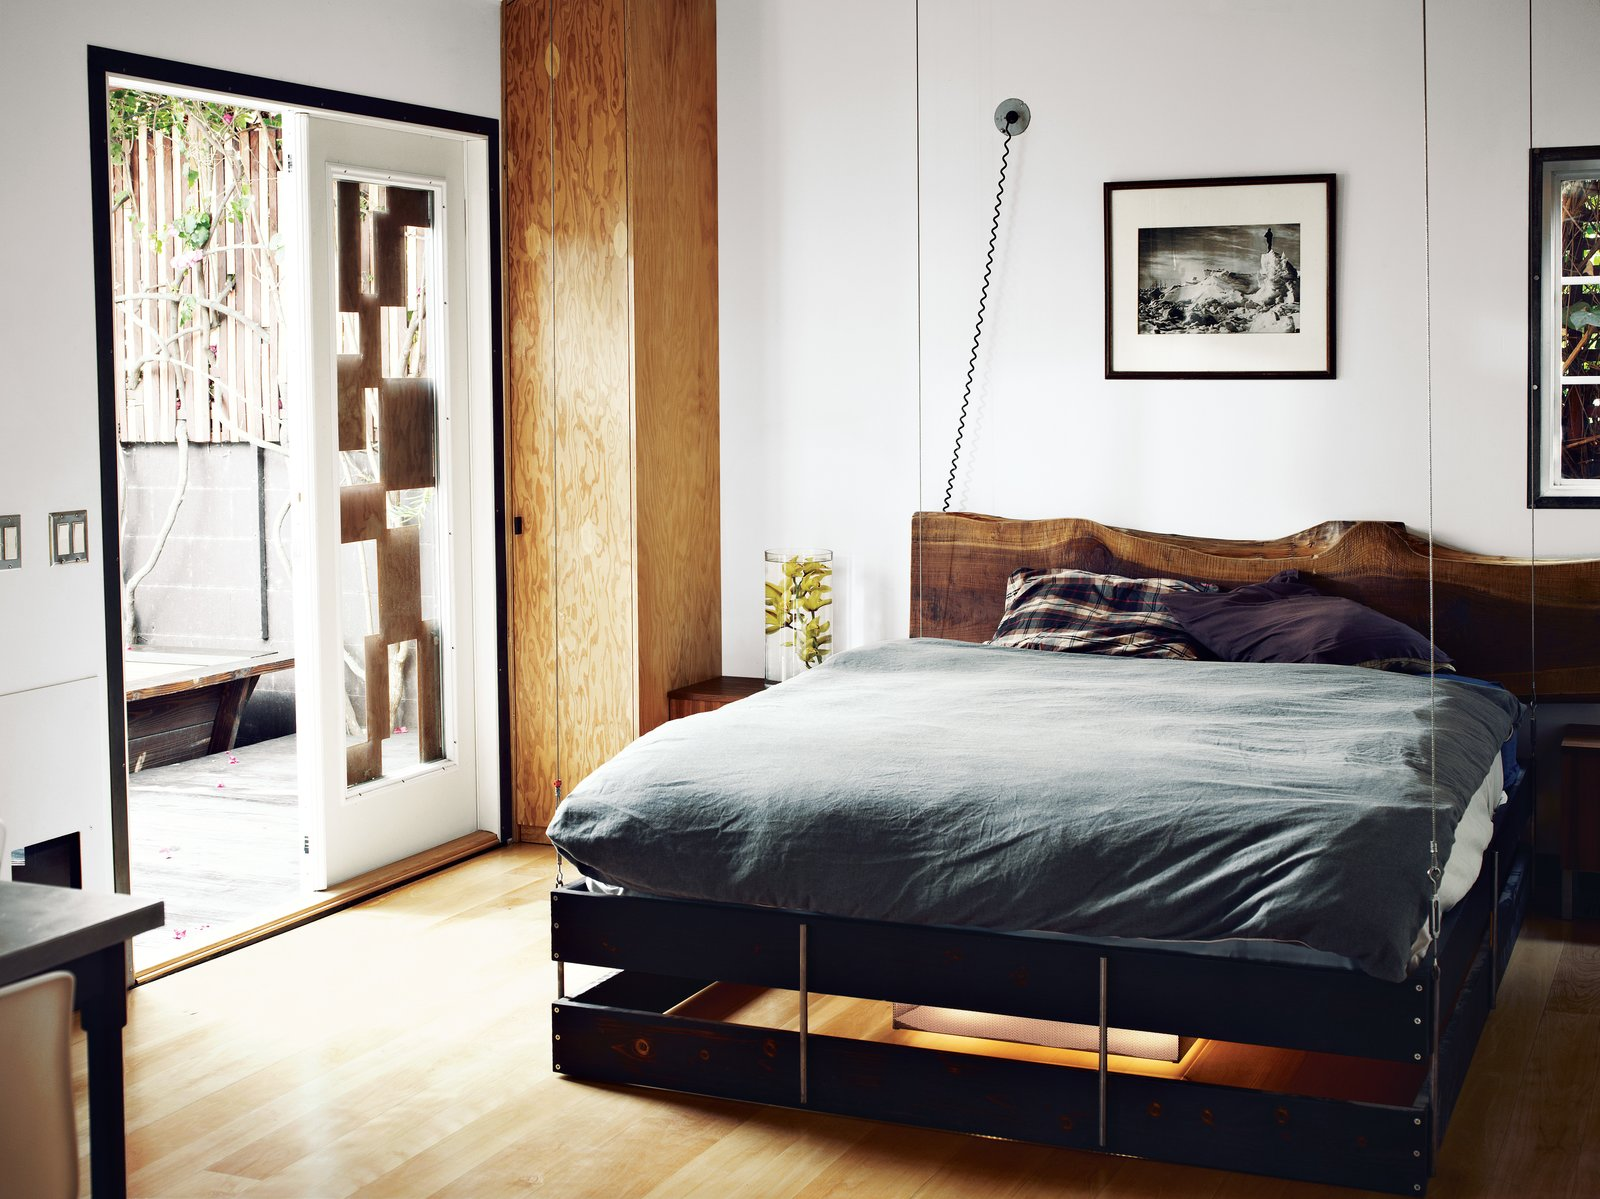 The bed was designed to hang from the ceiling and can be hoisted up and pulled down as needed. Tagged: Bedroom, Bed, and Medium Hardwood Floor.  Bedrooms by Dwell from The Tiny Hollywood Home of Mad Men's Vincent Kartheiser